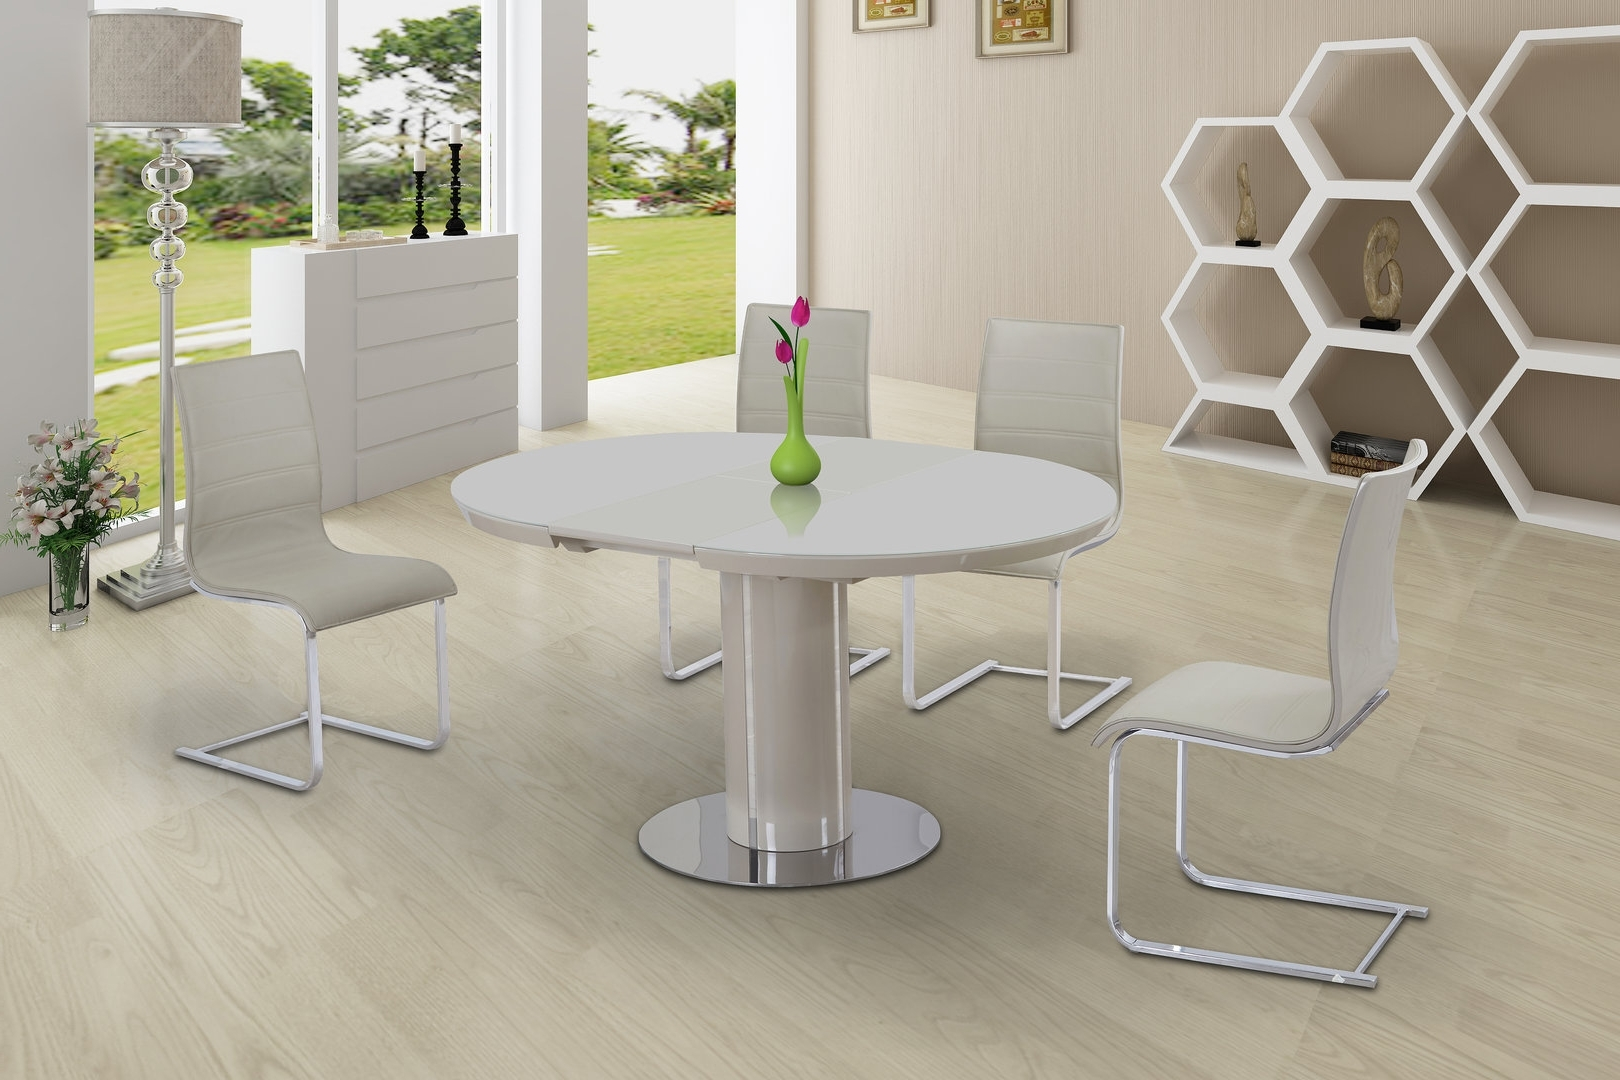 High Gloss Dining Tables Intended For Most Popular Round Cream Glass High Gloss Dining Table & 4 Chairs – Homegenies (View 7 of 25)